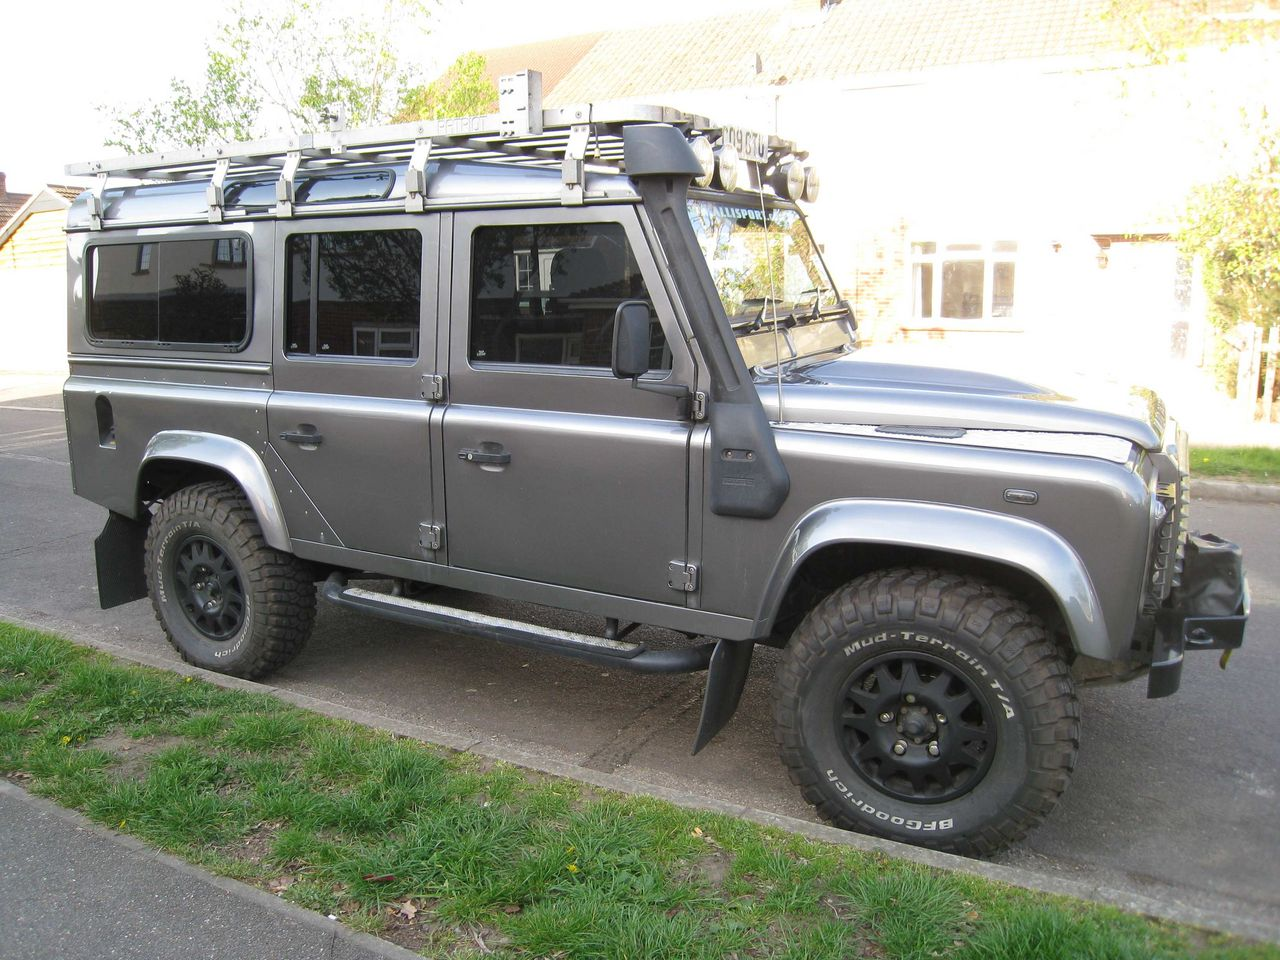 disco3 co uk view topic f s defender 110 xs 09 plate stornaway grey updated pics. Black Bedroom Furniture Sets. Home Design Ideas